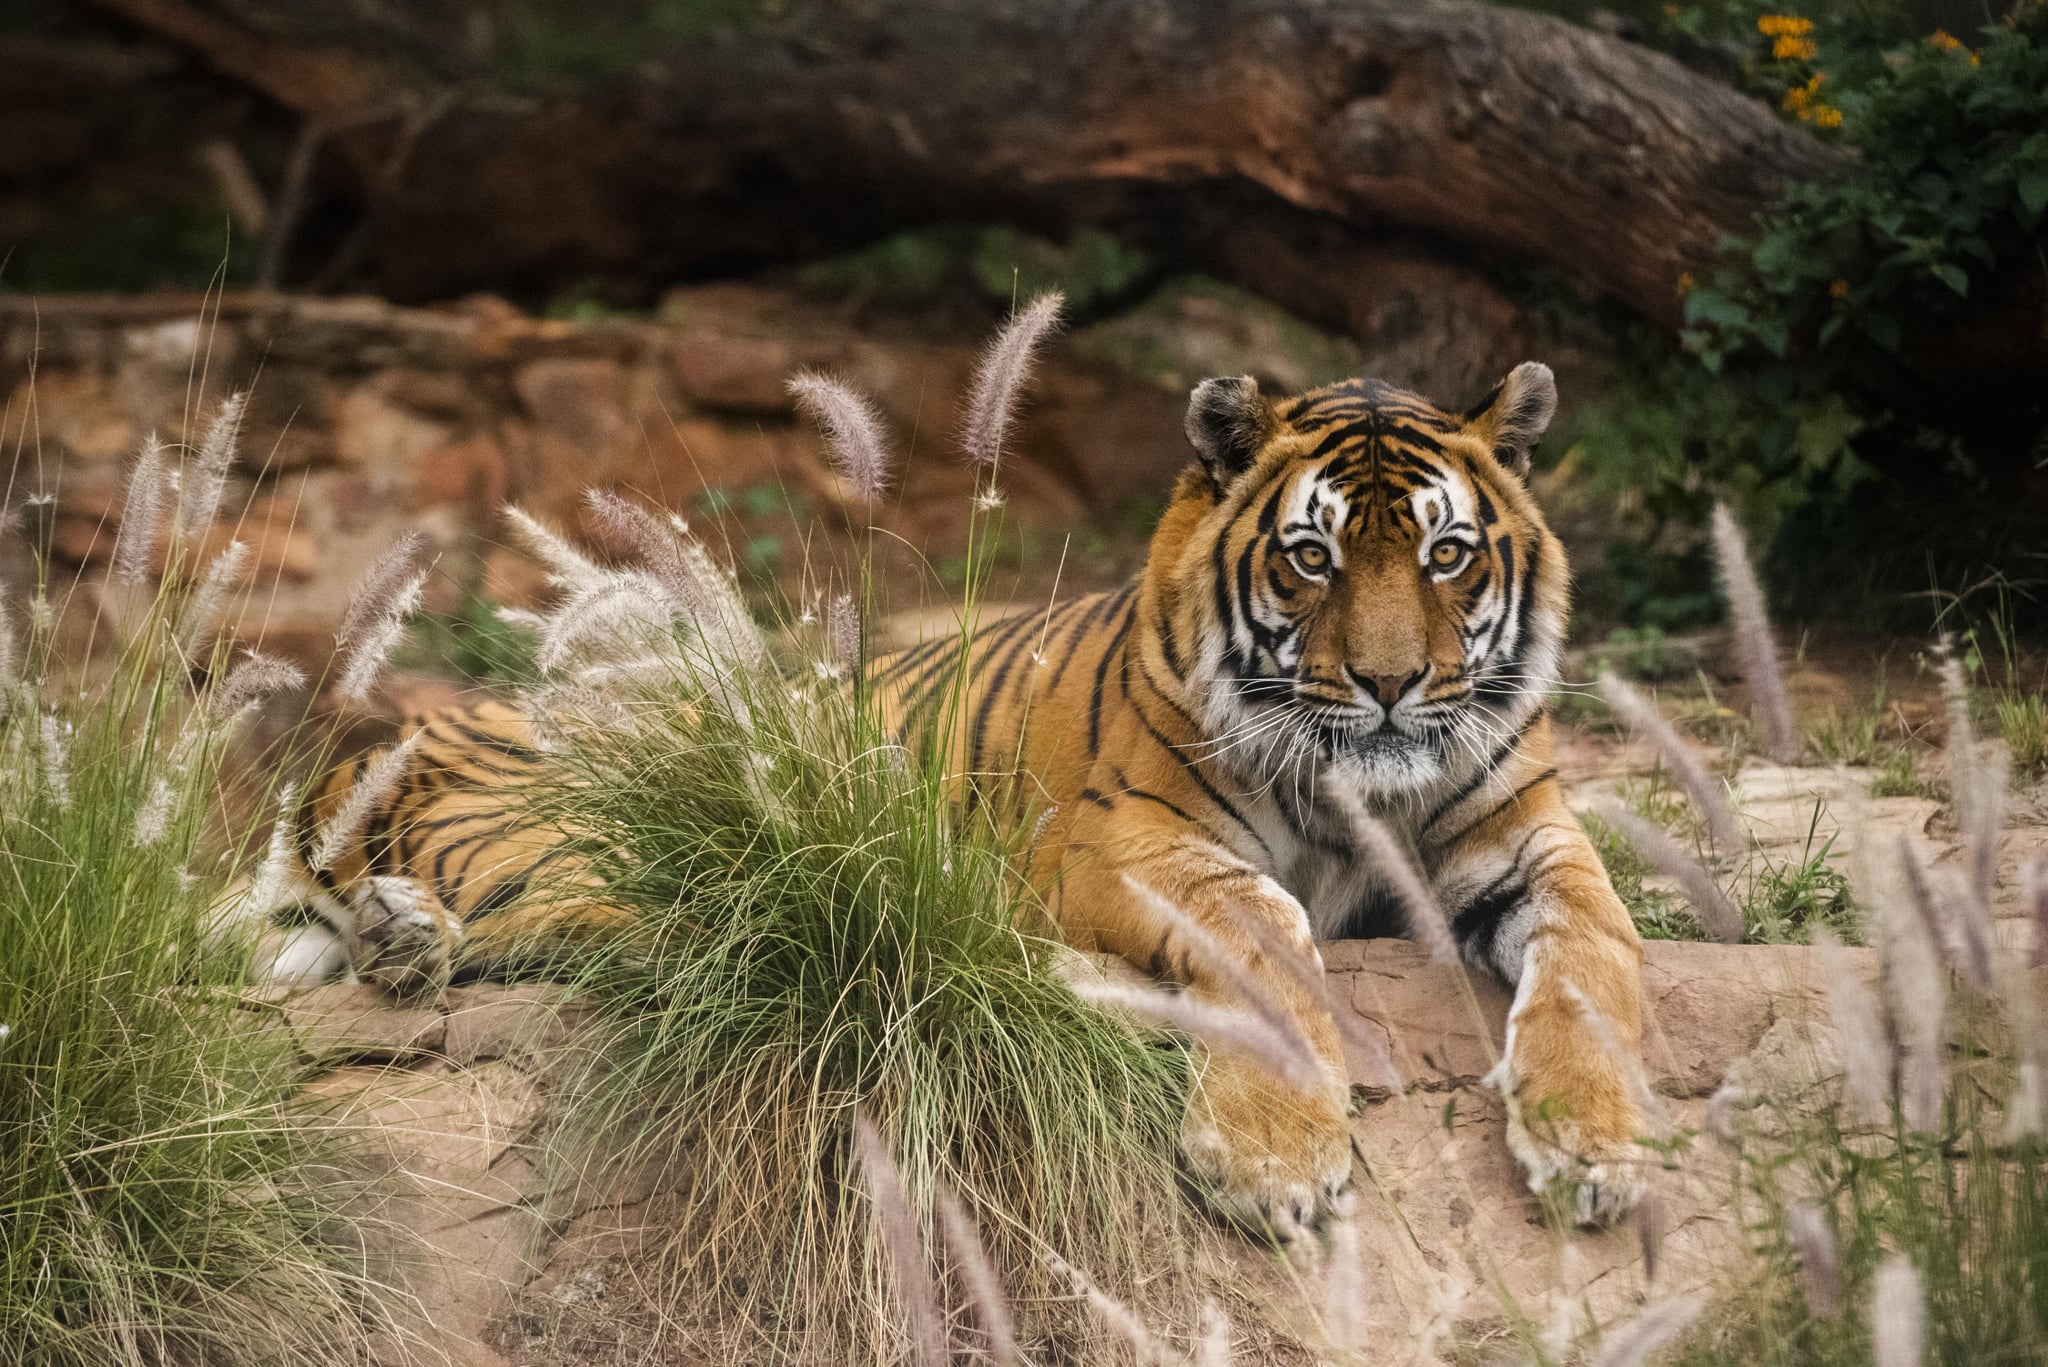 PRETORIA, SOUTH AFRICA - APRIL 02: A general view of the tiger at The National Zoological Gardens of South Africa on Day Seven of National Lockdown on April 02, 2020 in Pretoria, South Africa. According to media reports, President Ramaphosa declared a 21 day national shutdown to try to contain the spread of COVID-19. However, essential services such as the National Zoological Gardens will remain functional with minimum staff. (Photo by Alet Pretorius/Gallo Images via Getty Images)